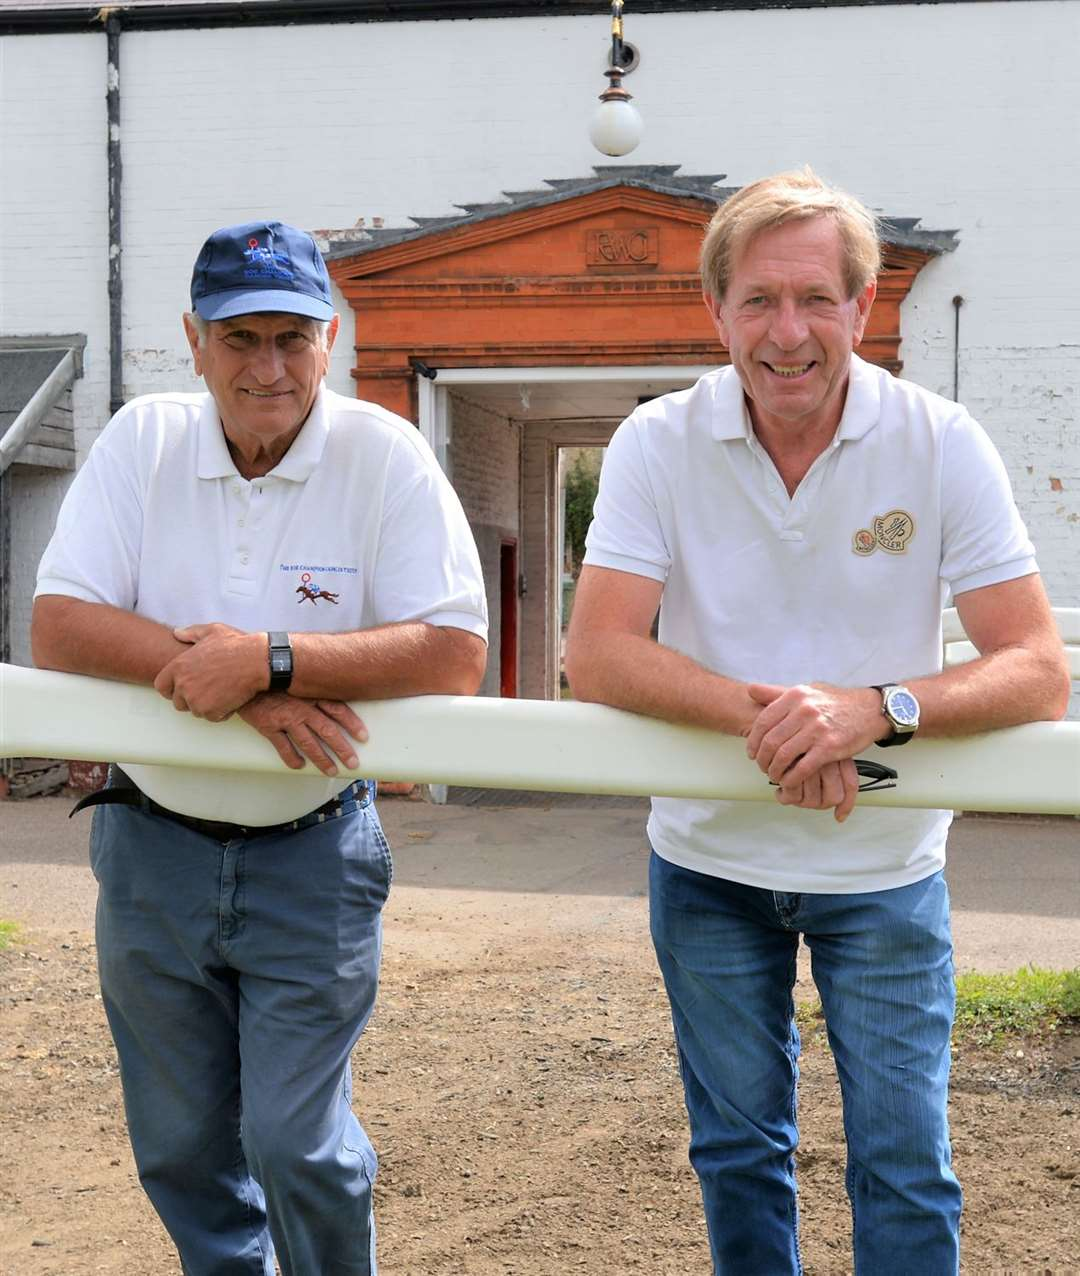 Bob Champion, left, has been awarded a CBE in the Queen's New Year's Honours list